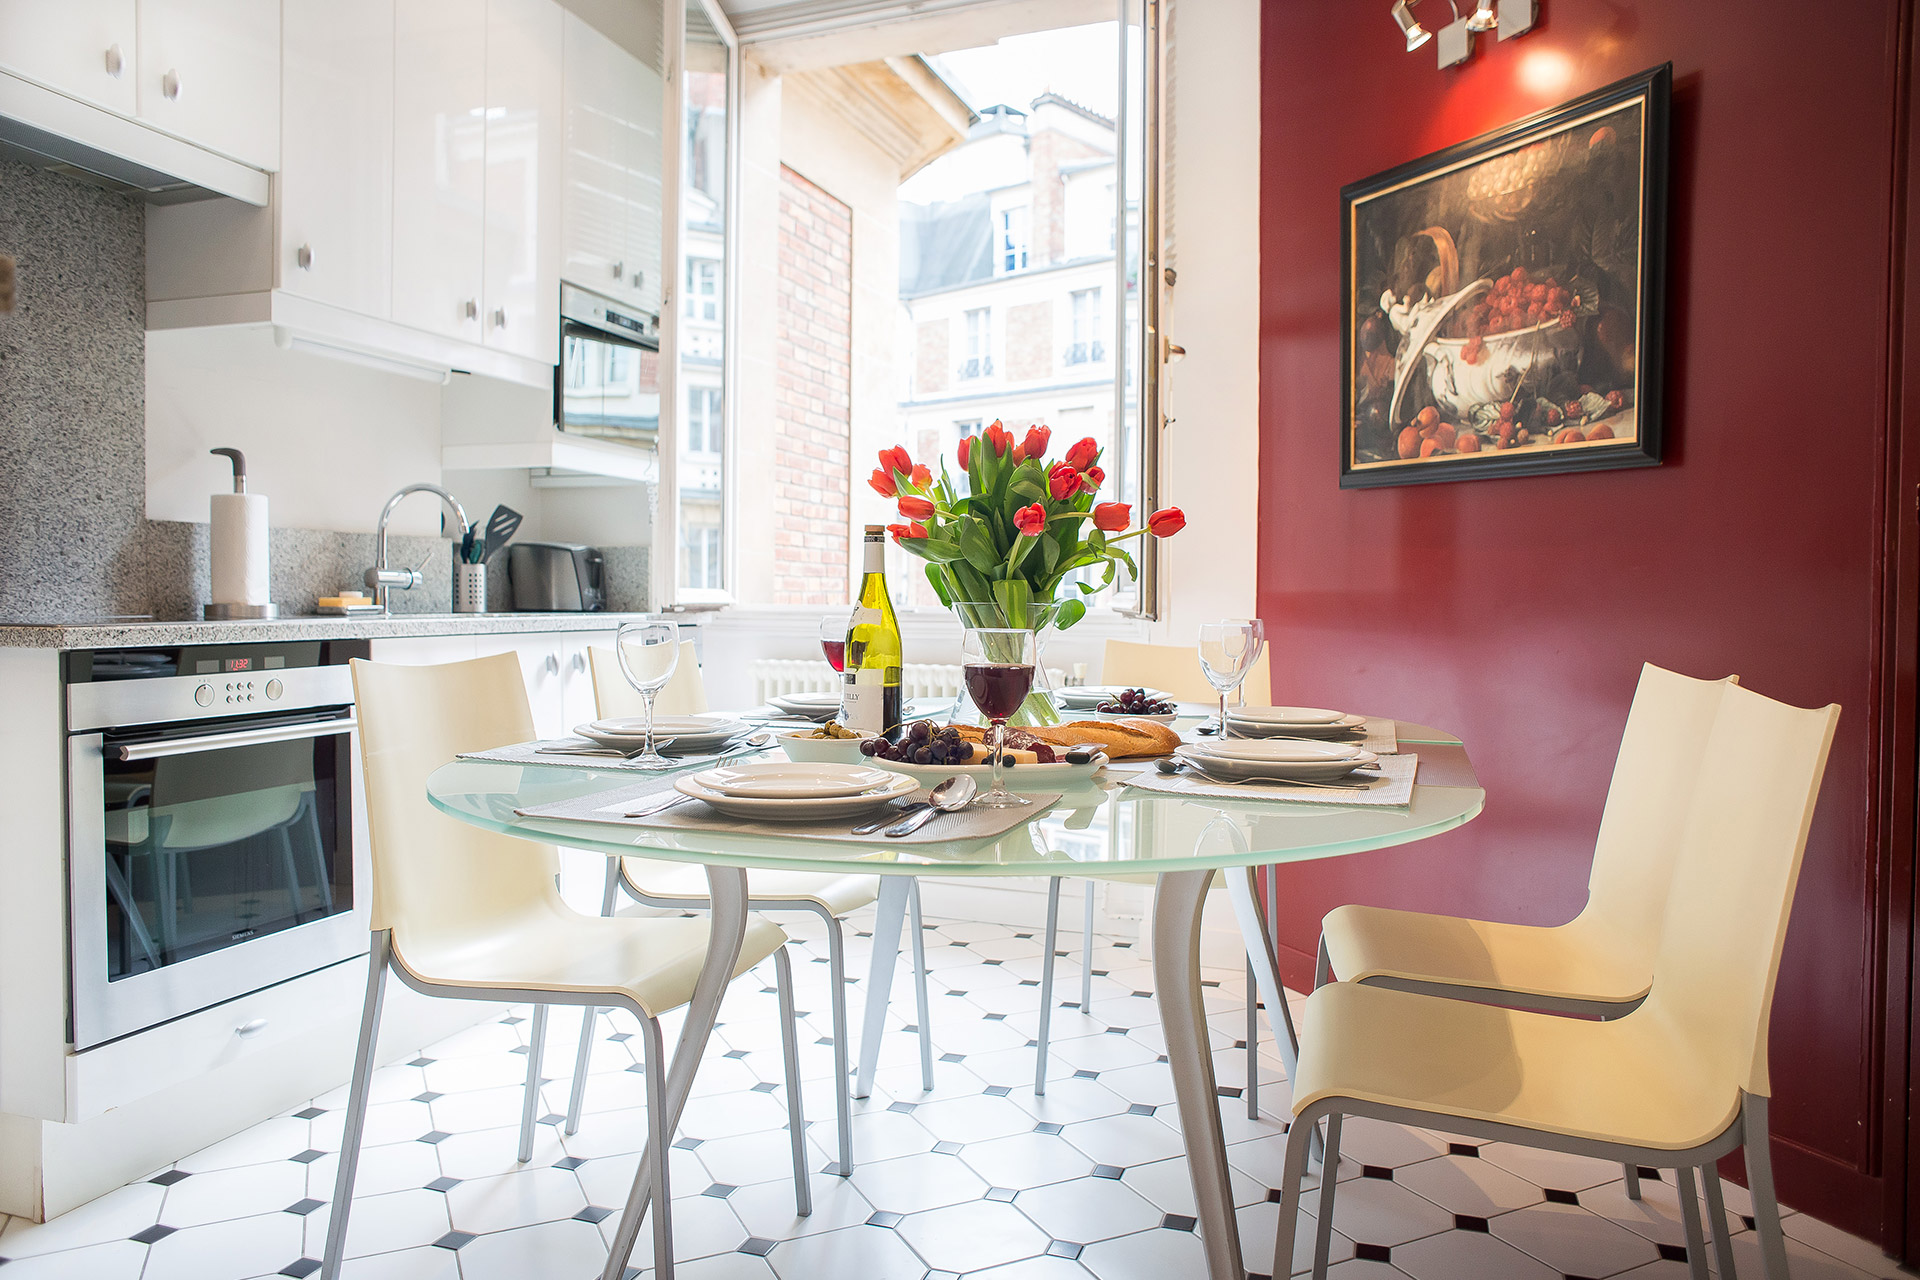 Enjoy elegant meals or casual gatherings in the dining area of the Chateauneuf vacation rental